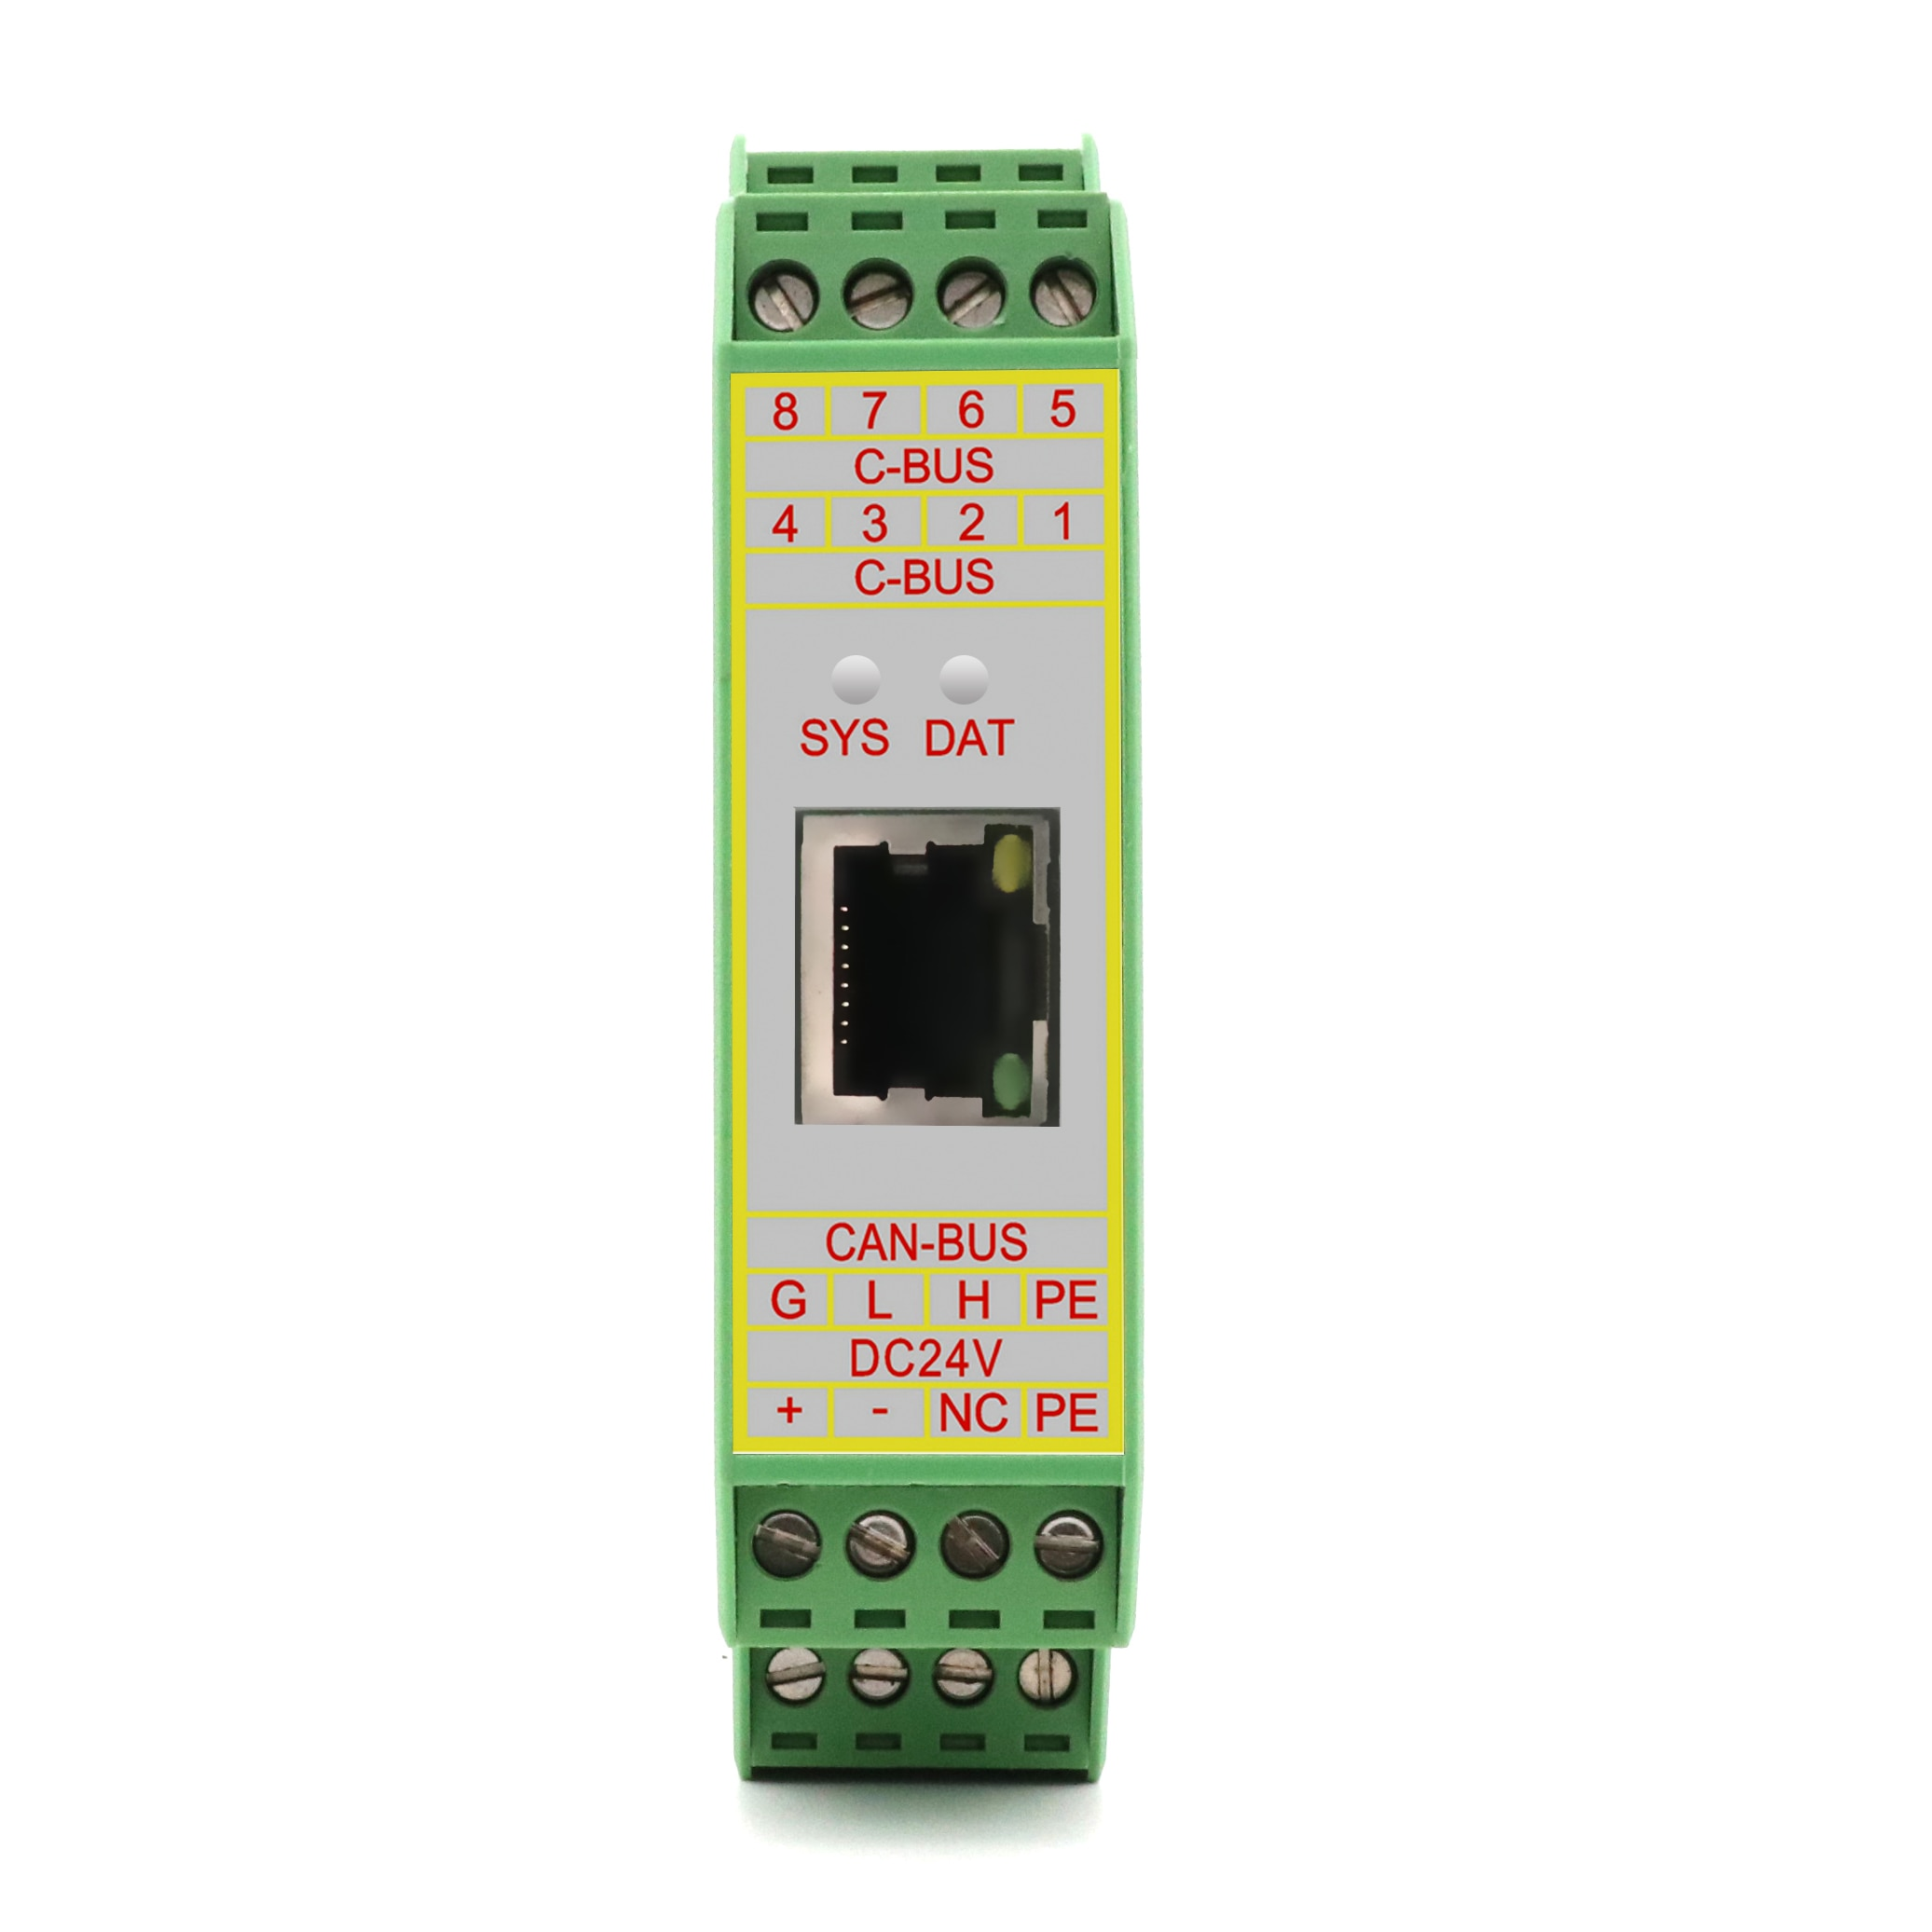 GCAN-205 CAN-Bus and ethernet converter integrated Modbus TCP/ RTU slave protocol convert data between CAN-Bus and Modbus TCP. enlarge